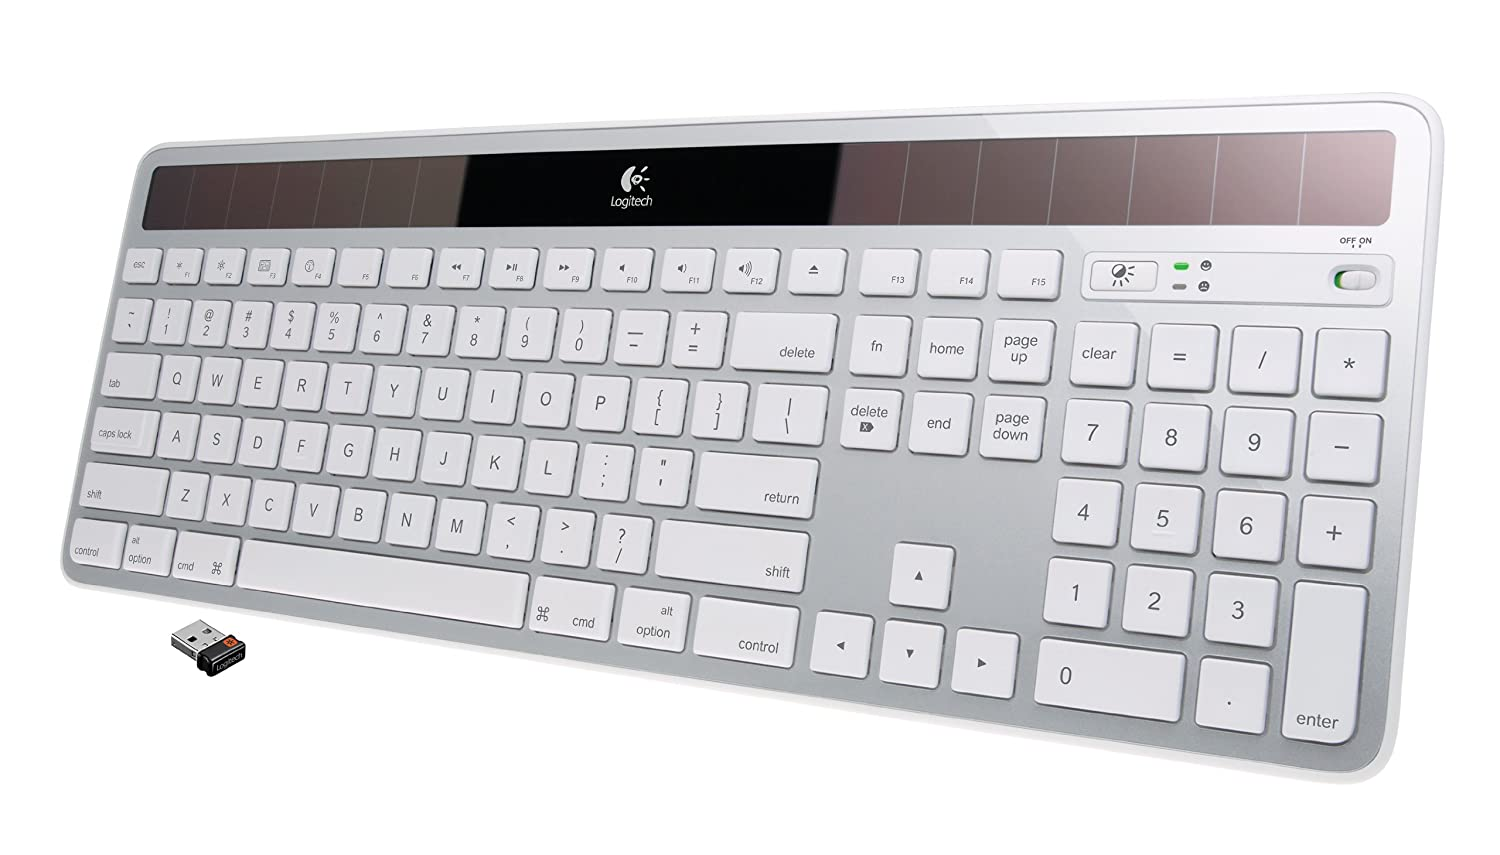 apple wireless keyboard now ships in 1 2 weeks new backlit model possible mac rumors. Black Bedroom Furniture Sets. Home Design Ideas